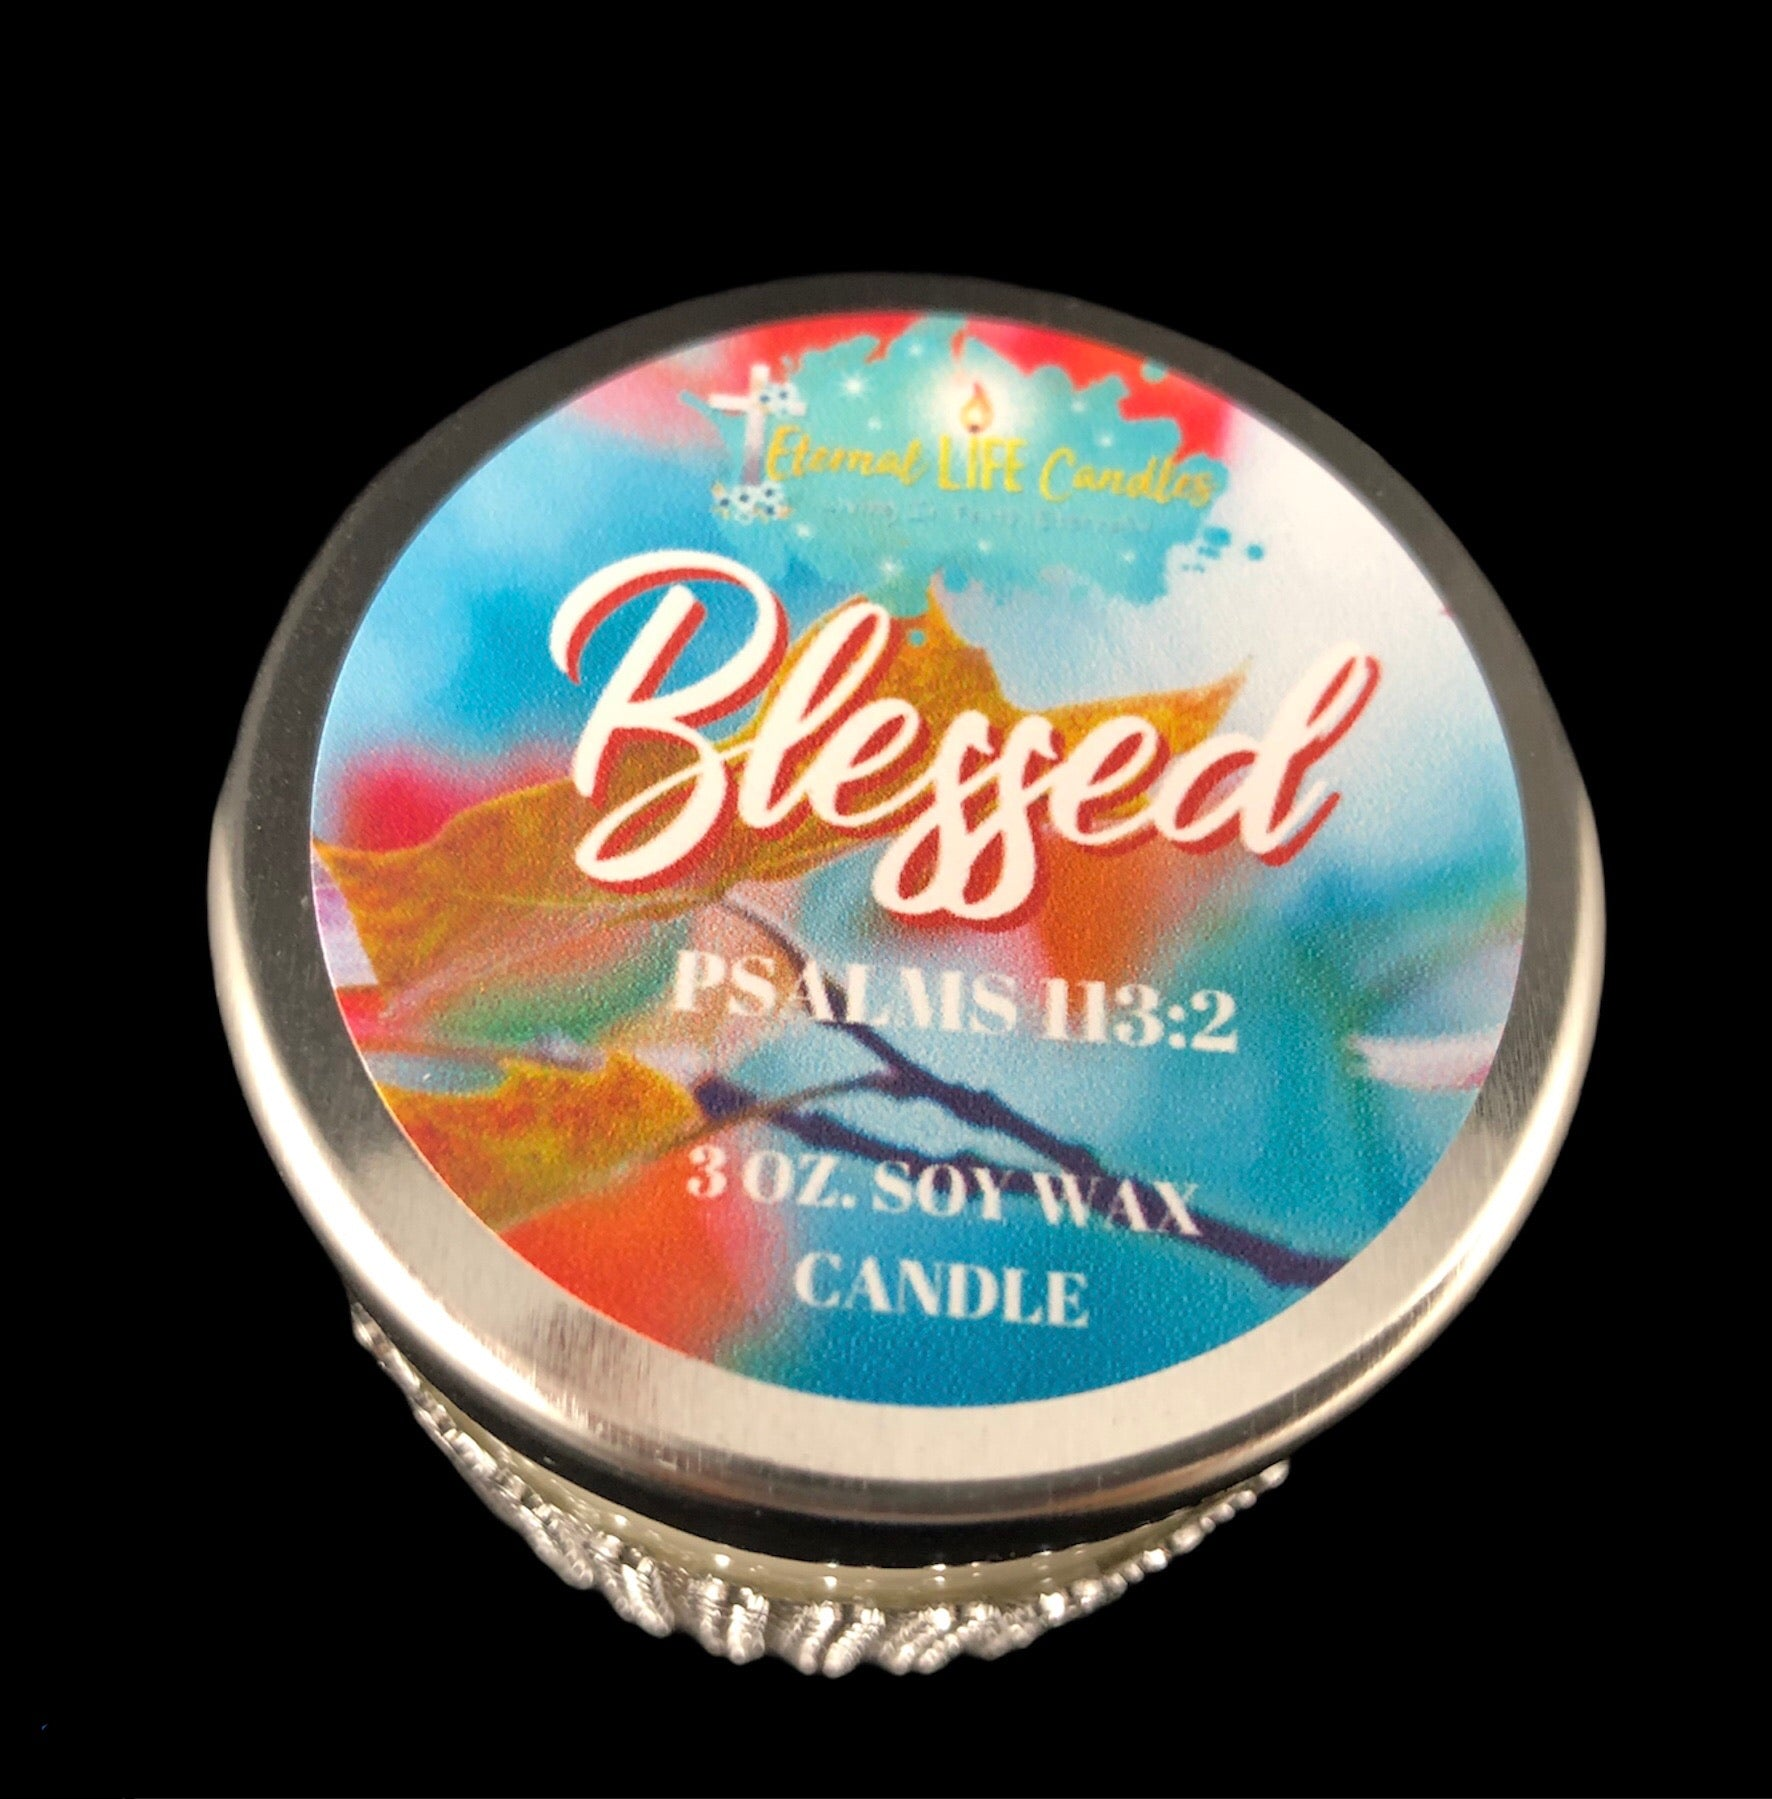 Blessed Favored Candle